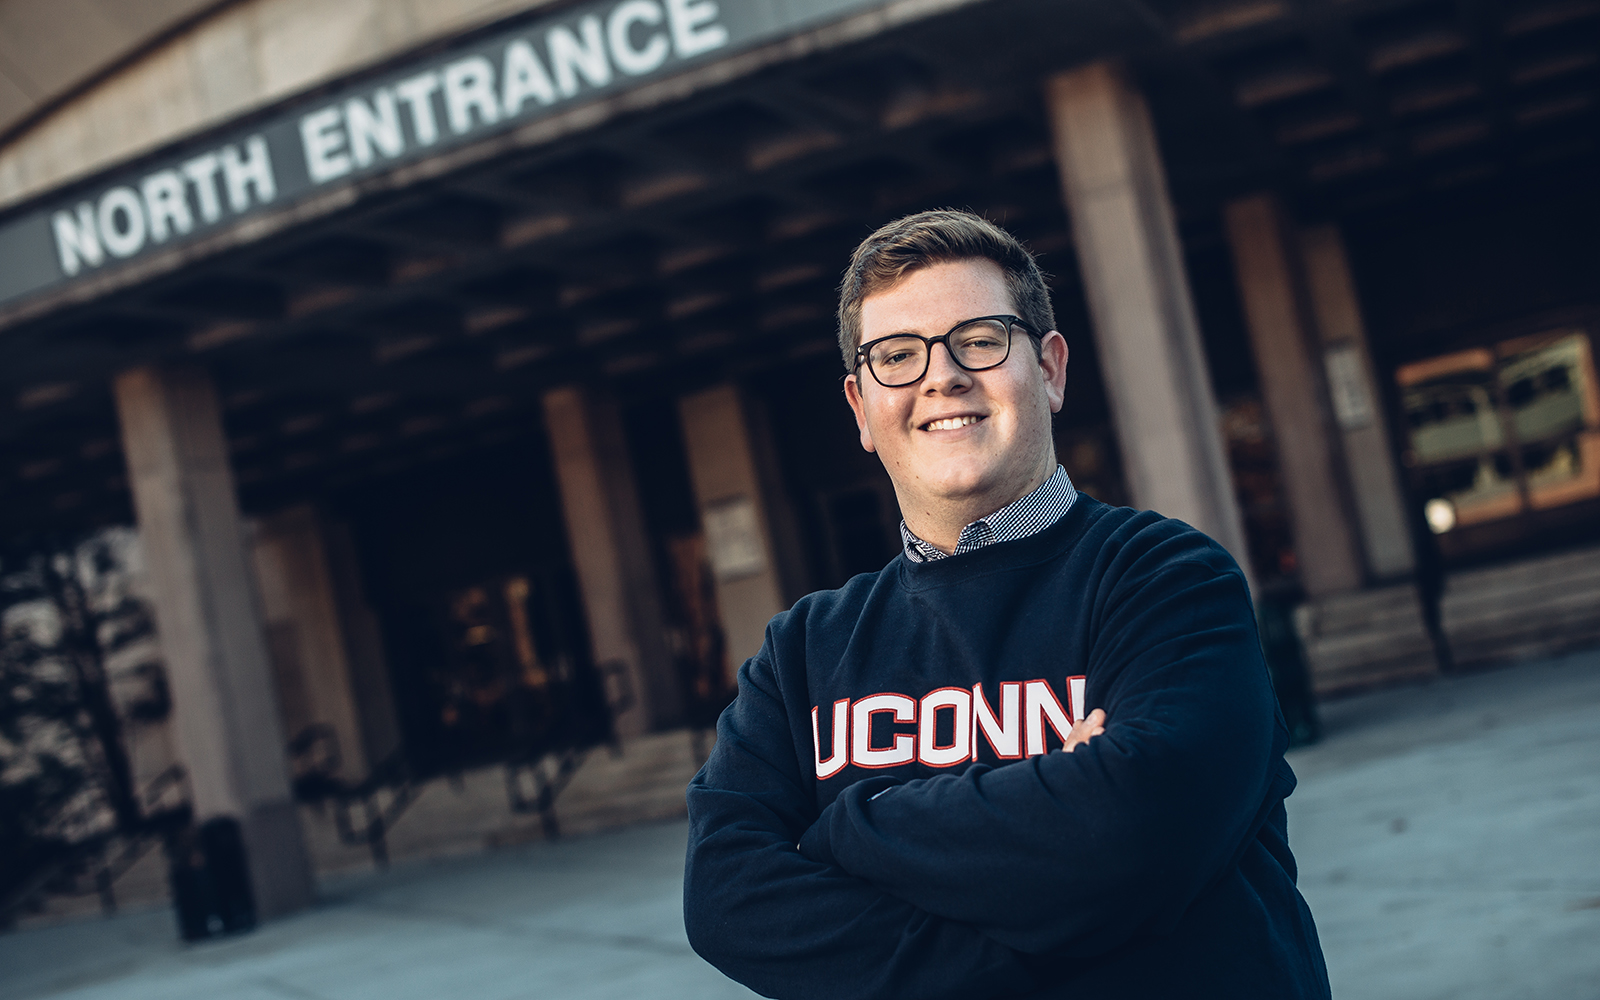 When senior Andrew Carroll graduates in May, he will have completed a triple major, and his resume will include a semester of education abroad and additional world travel that gave him a new, bolder perspective. (Nathan Oldham/UConn School of Business)